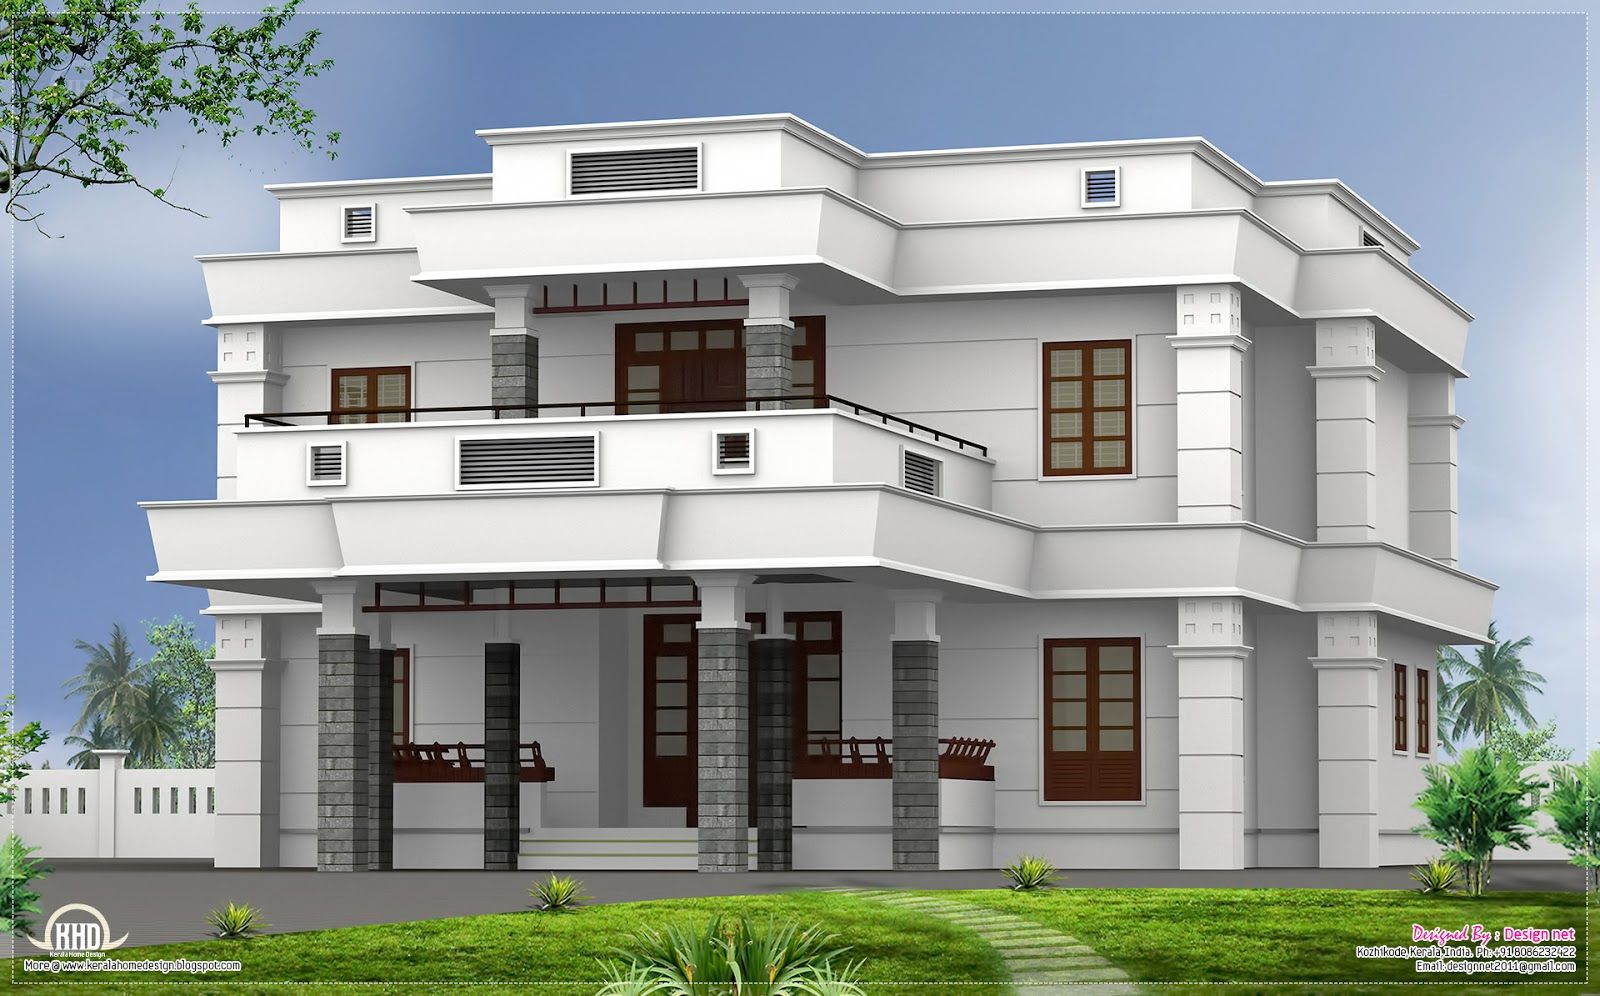 Flat roof homes designs bhk modern flat roof house for Kerala style home designs and elevations